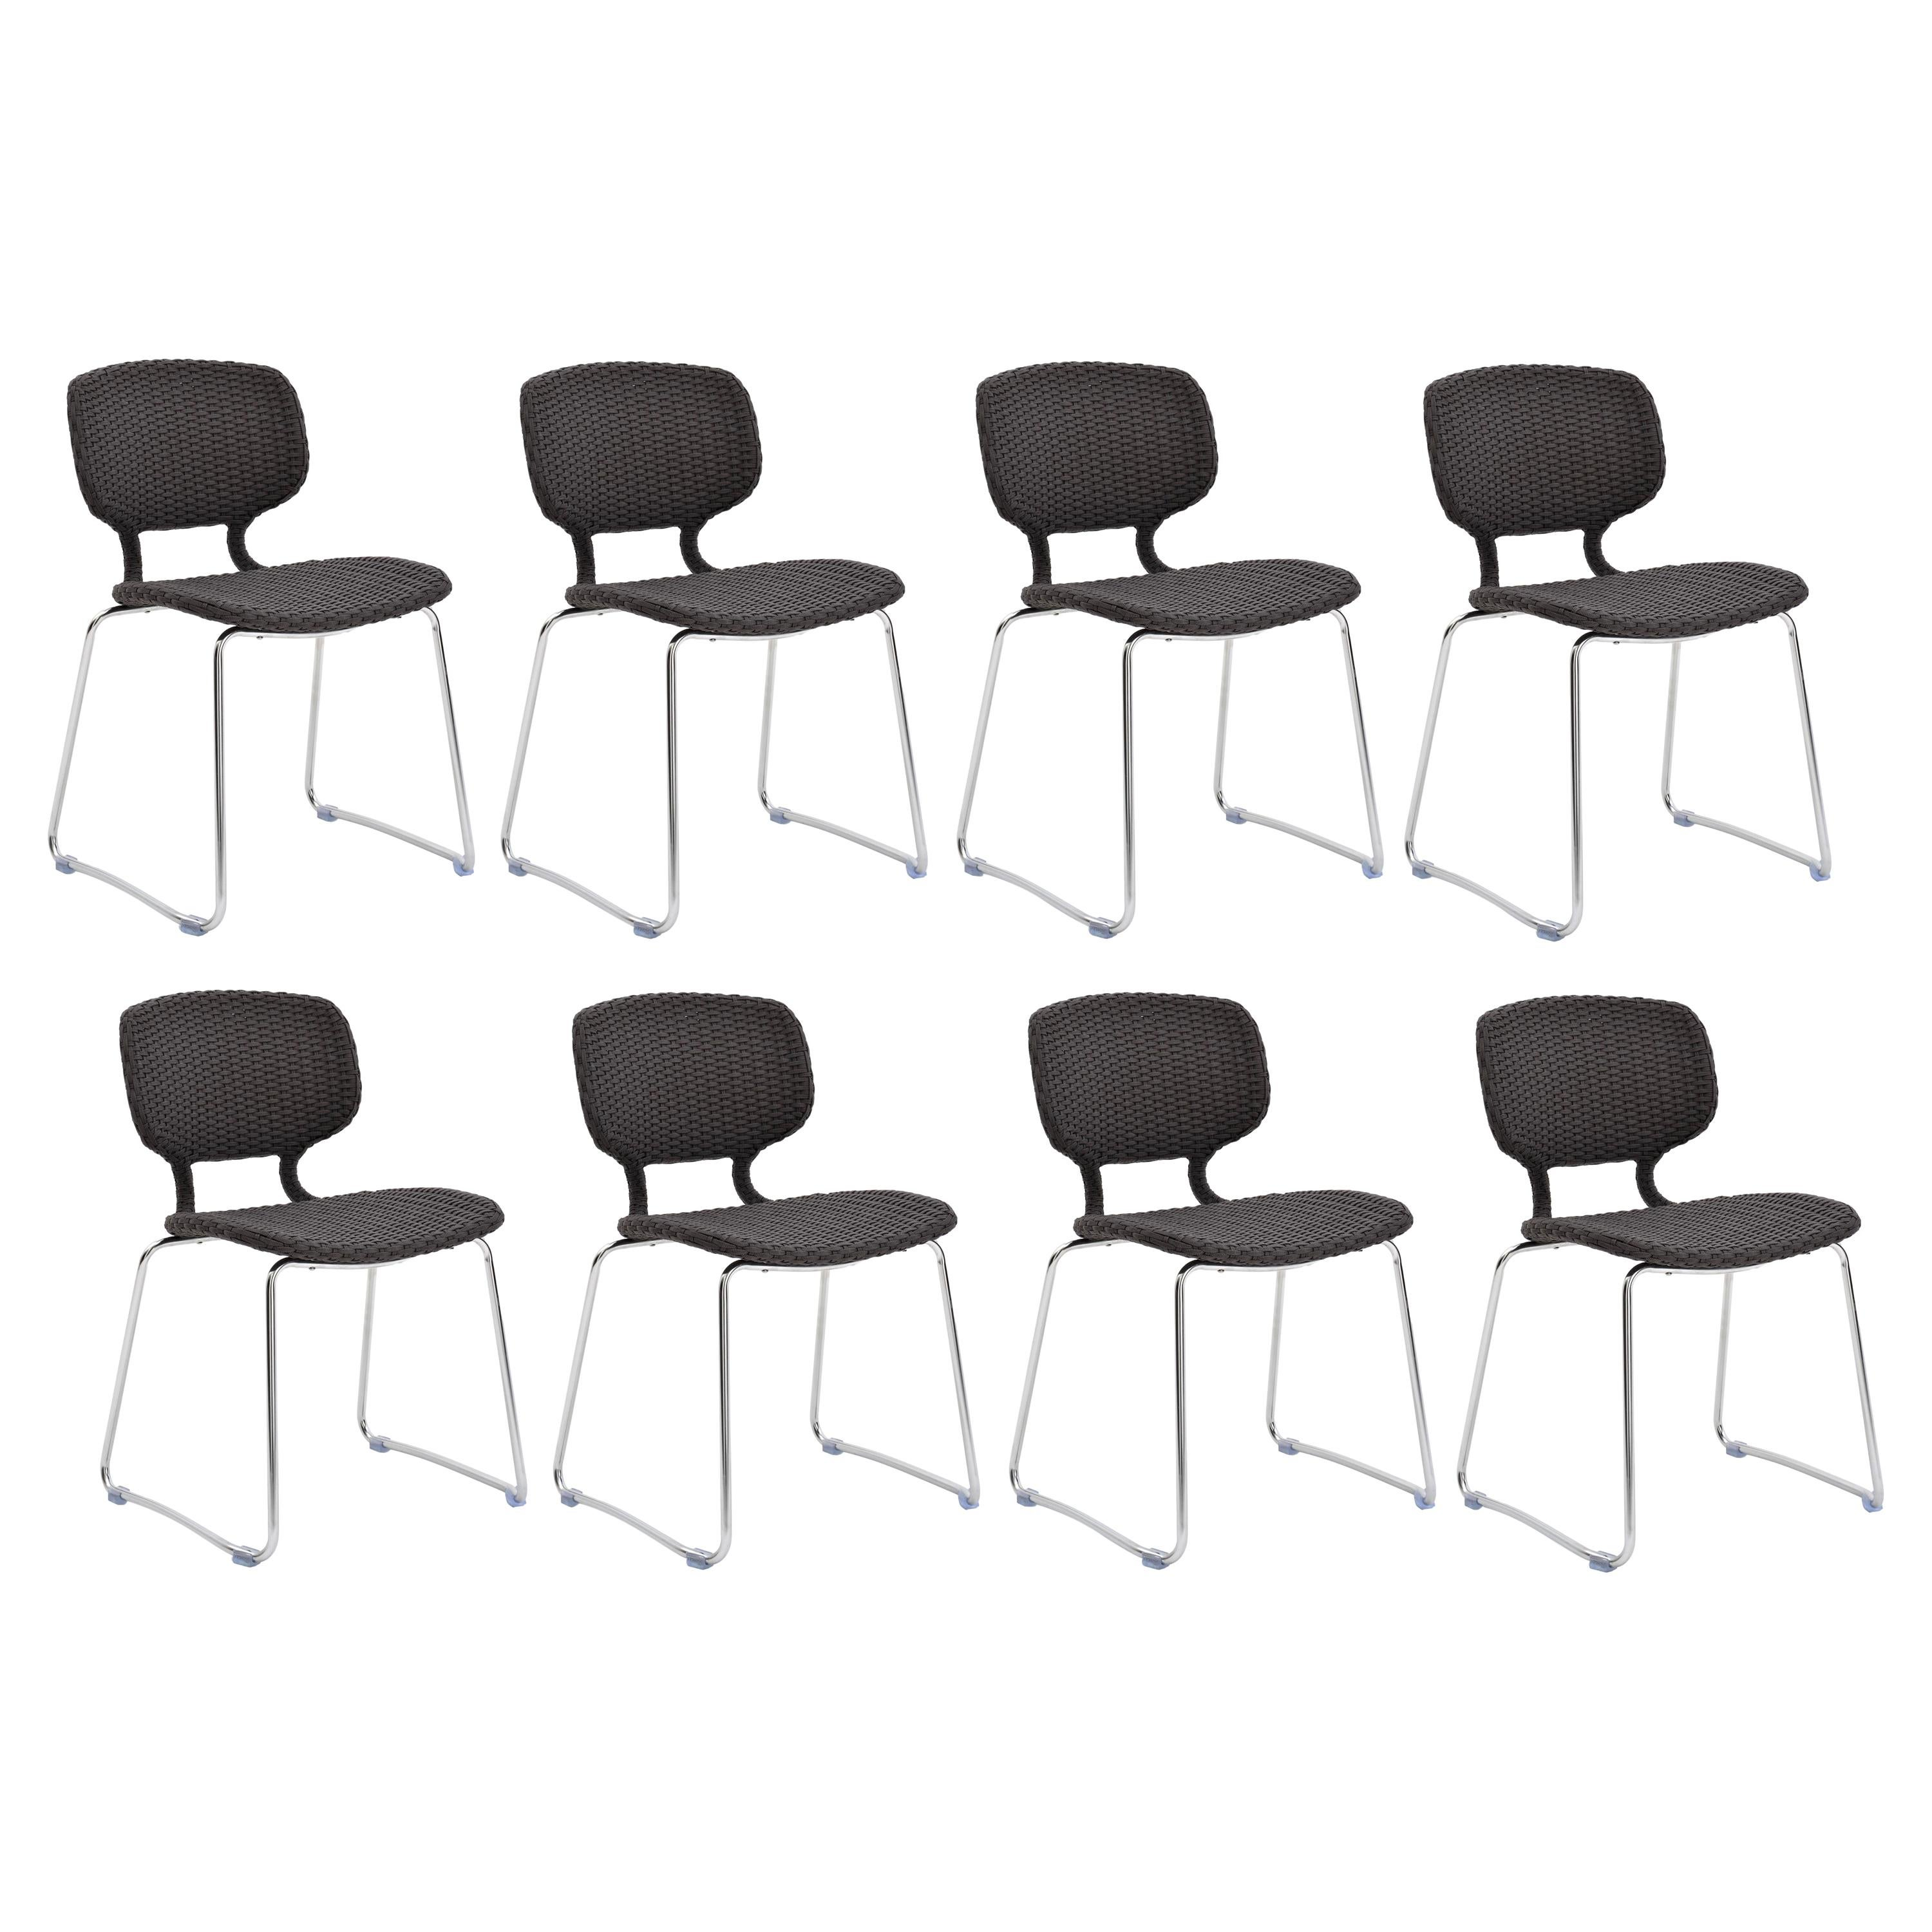 Italian Outdoor Set of 8 Stackable Dining Chairs